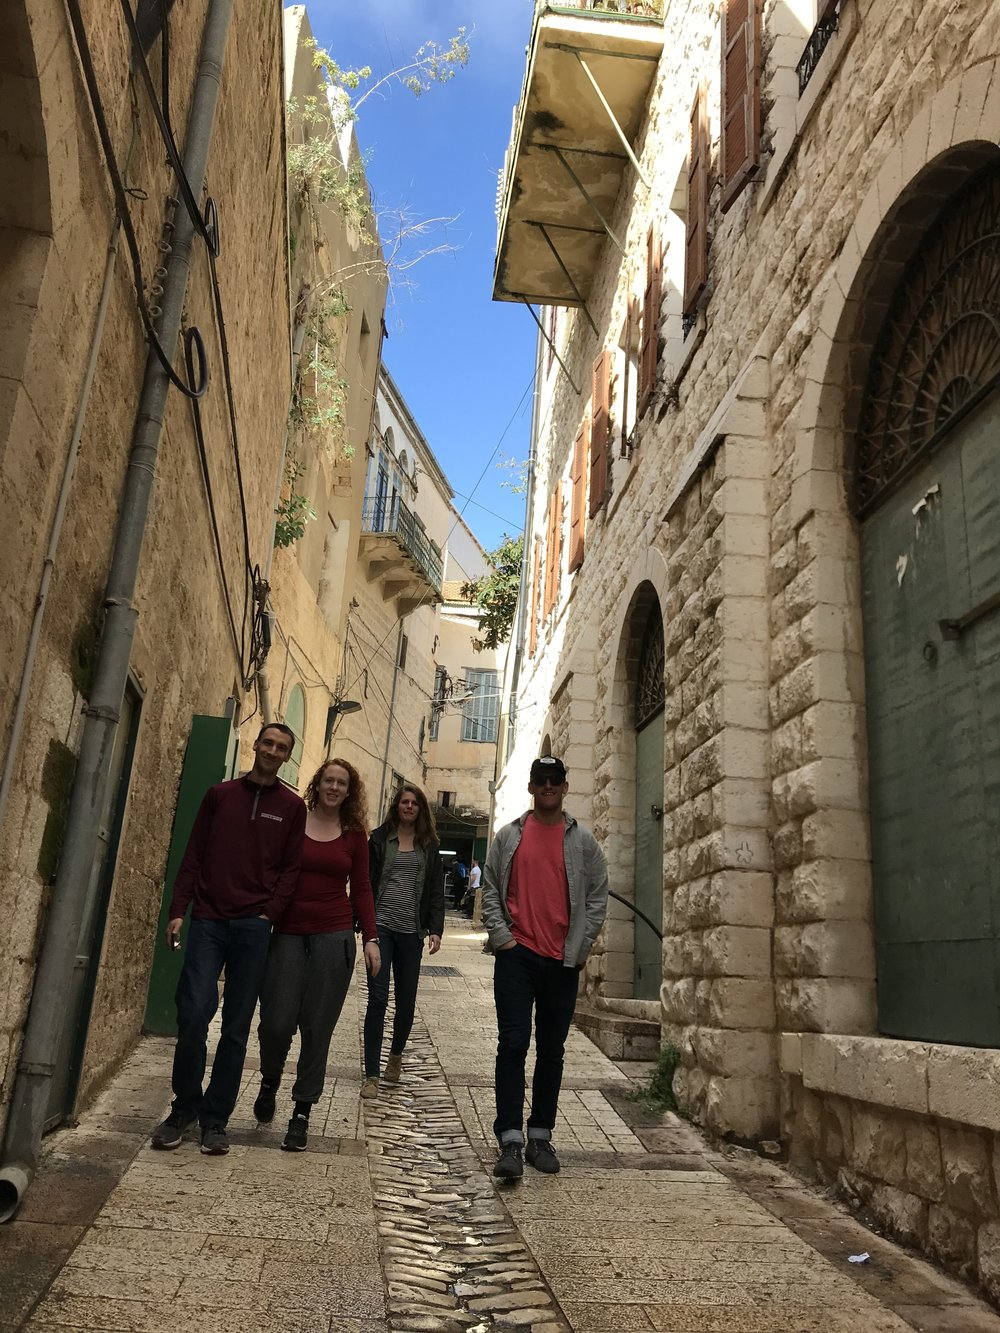 Walking on a side street in Nazareth